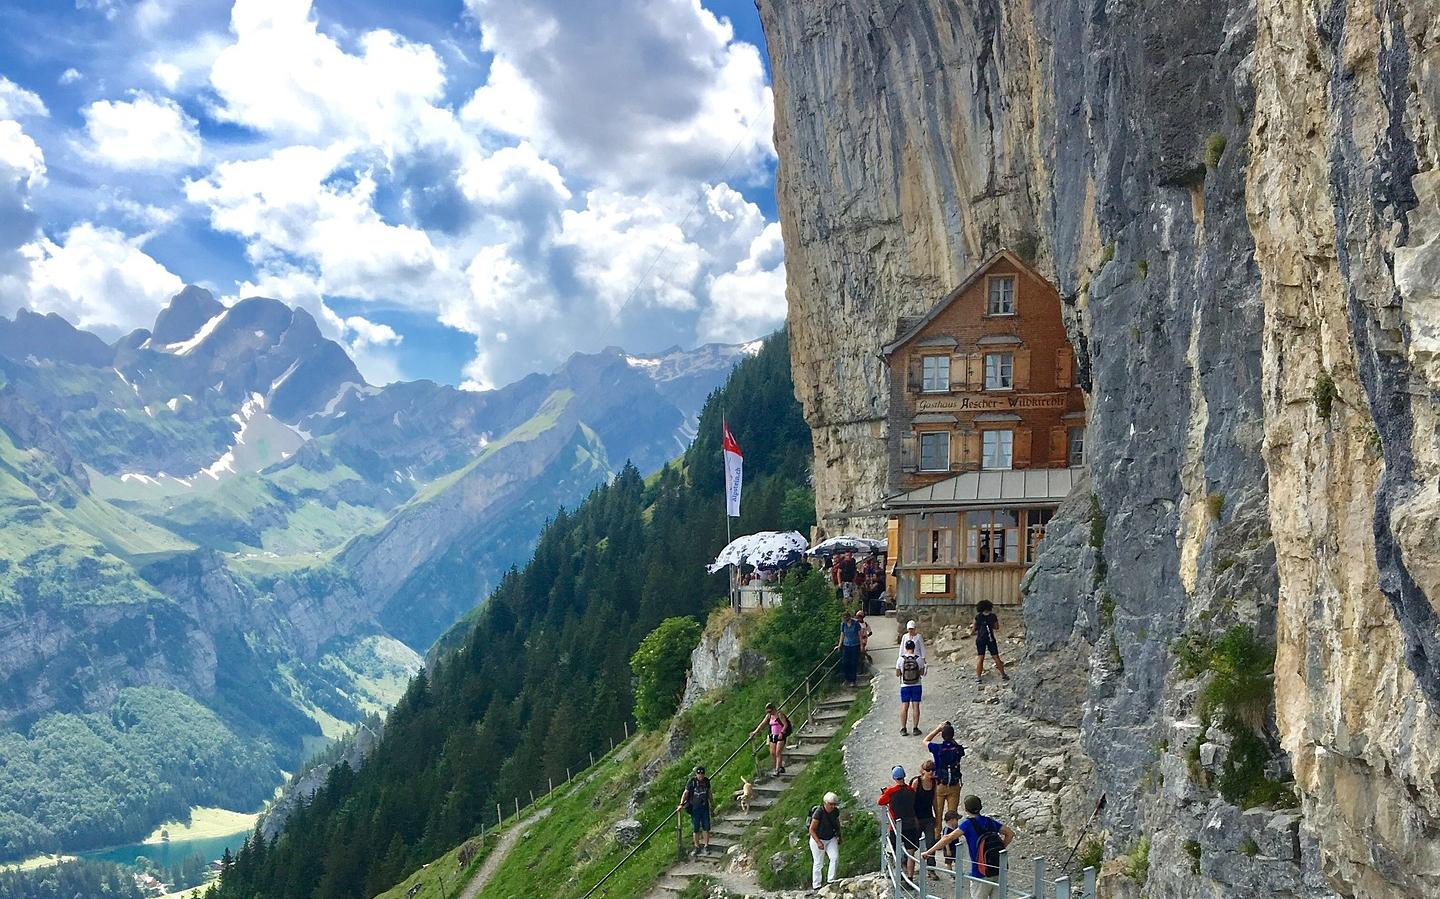 Berggasthaus Aescher - Whisky Hiking Trail, Switzerland